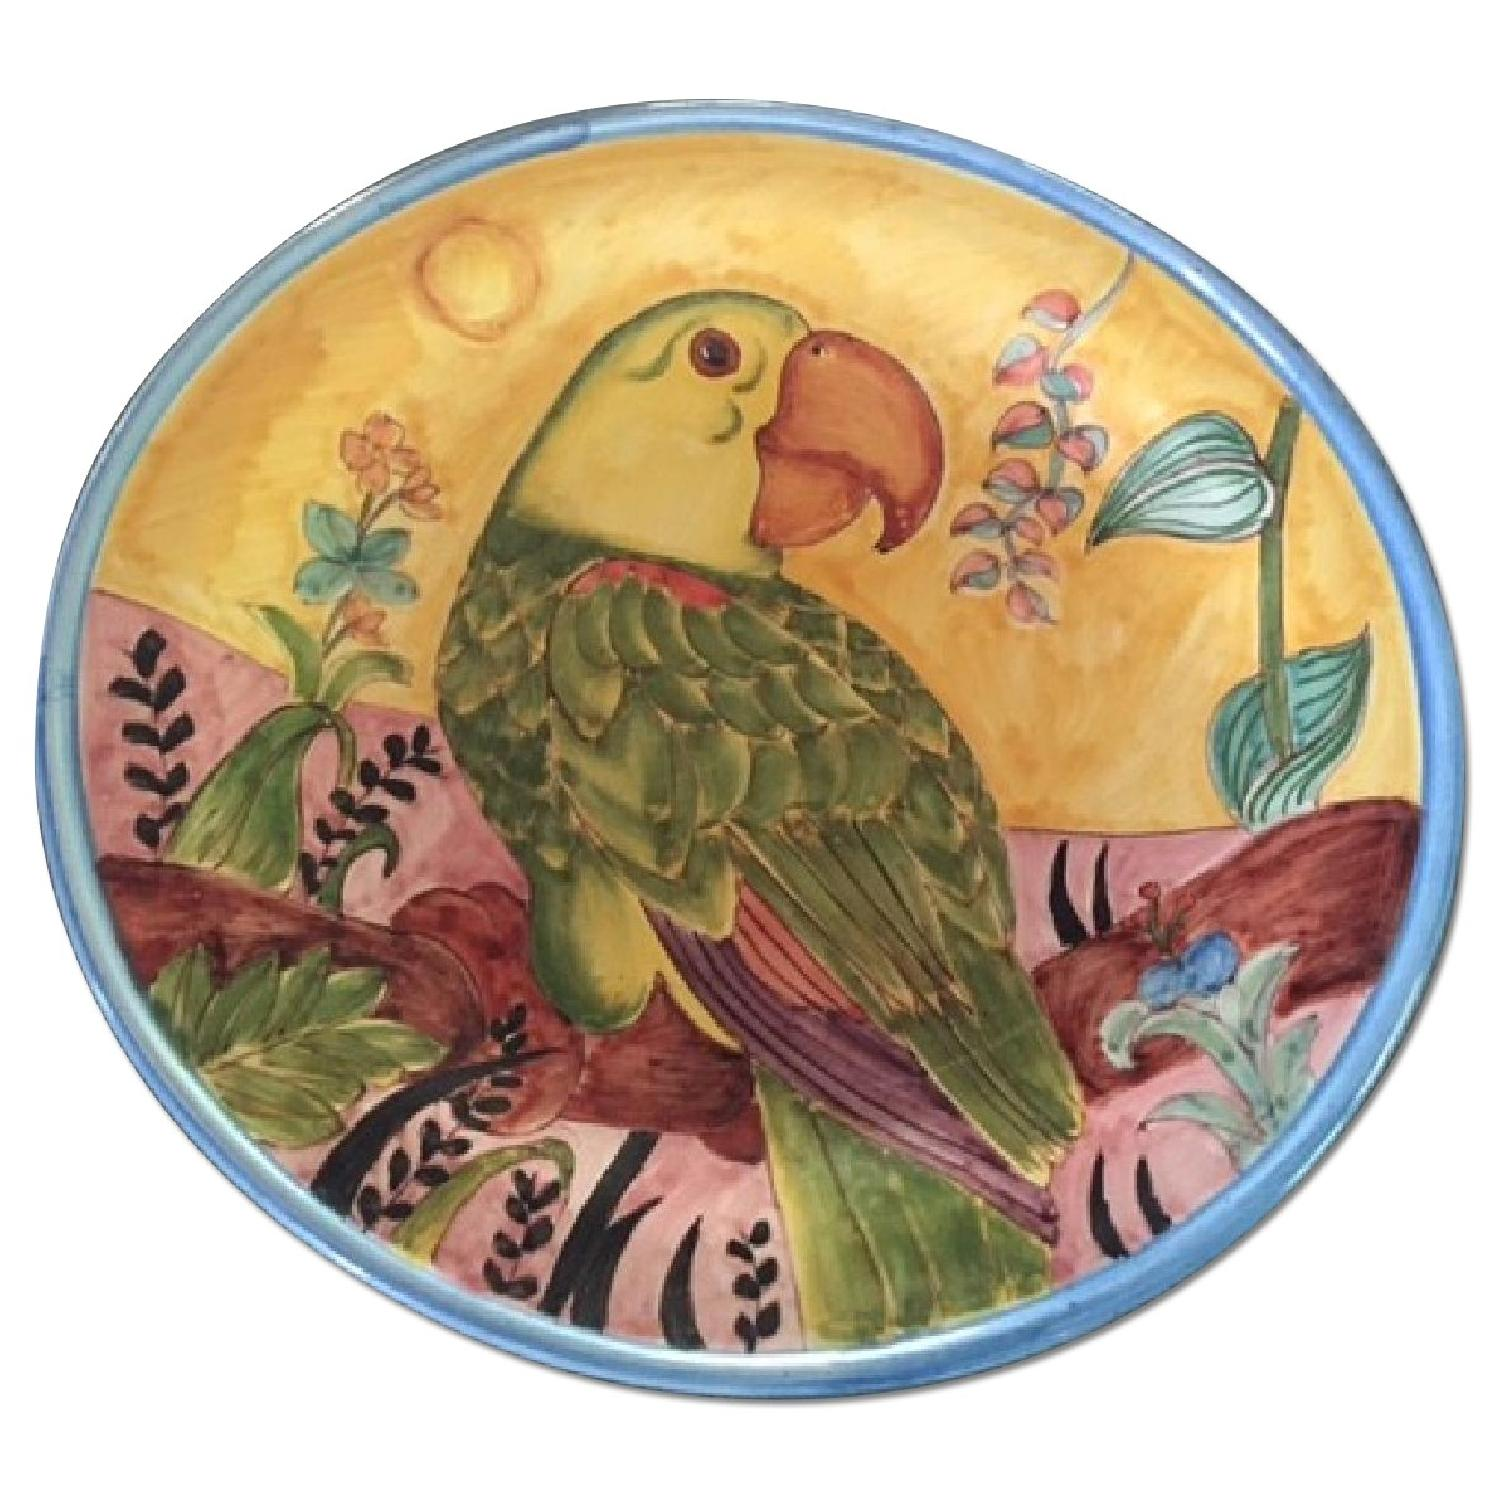 Country Floors Italian Hand Painted Decorative Platter w/ Parrot Print - image-0